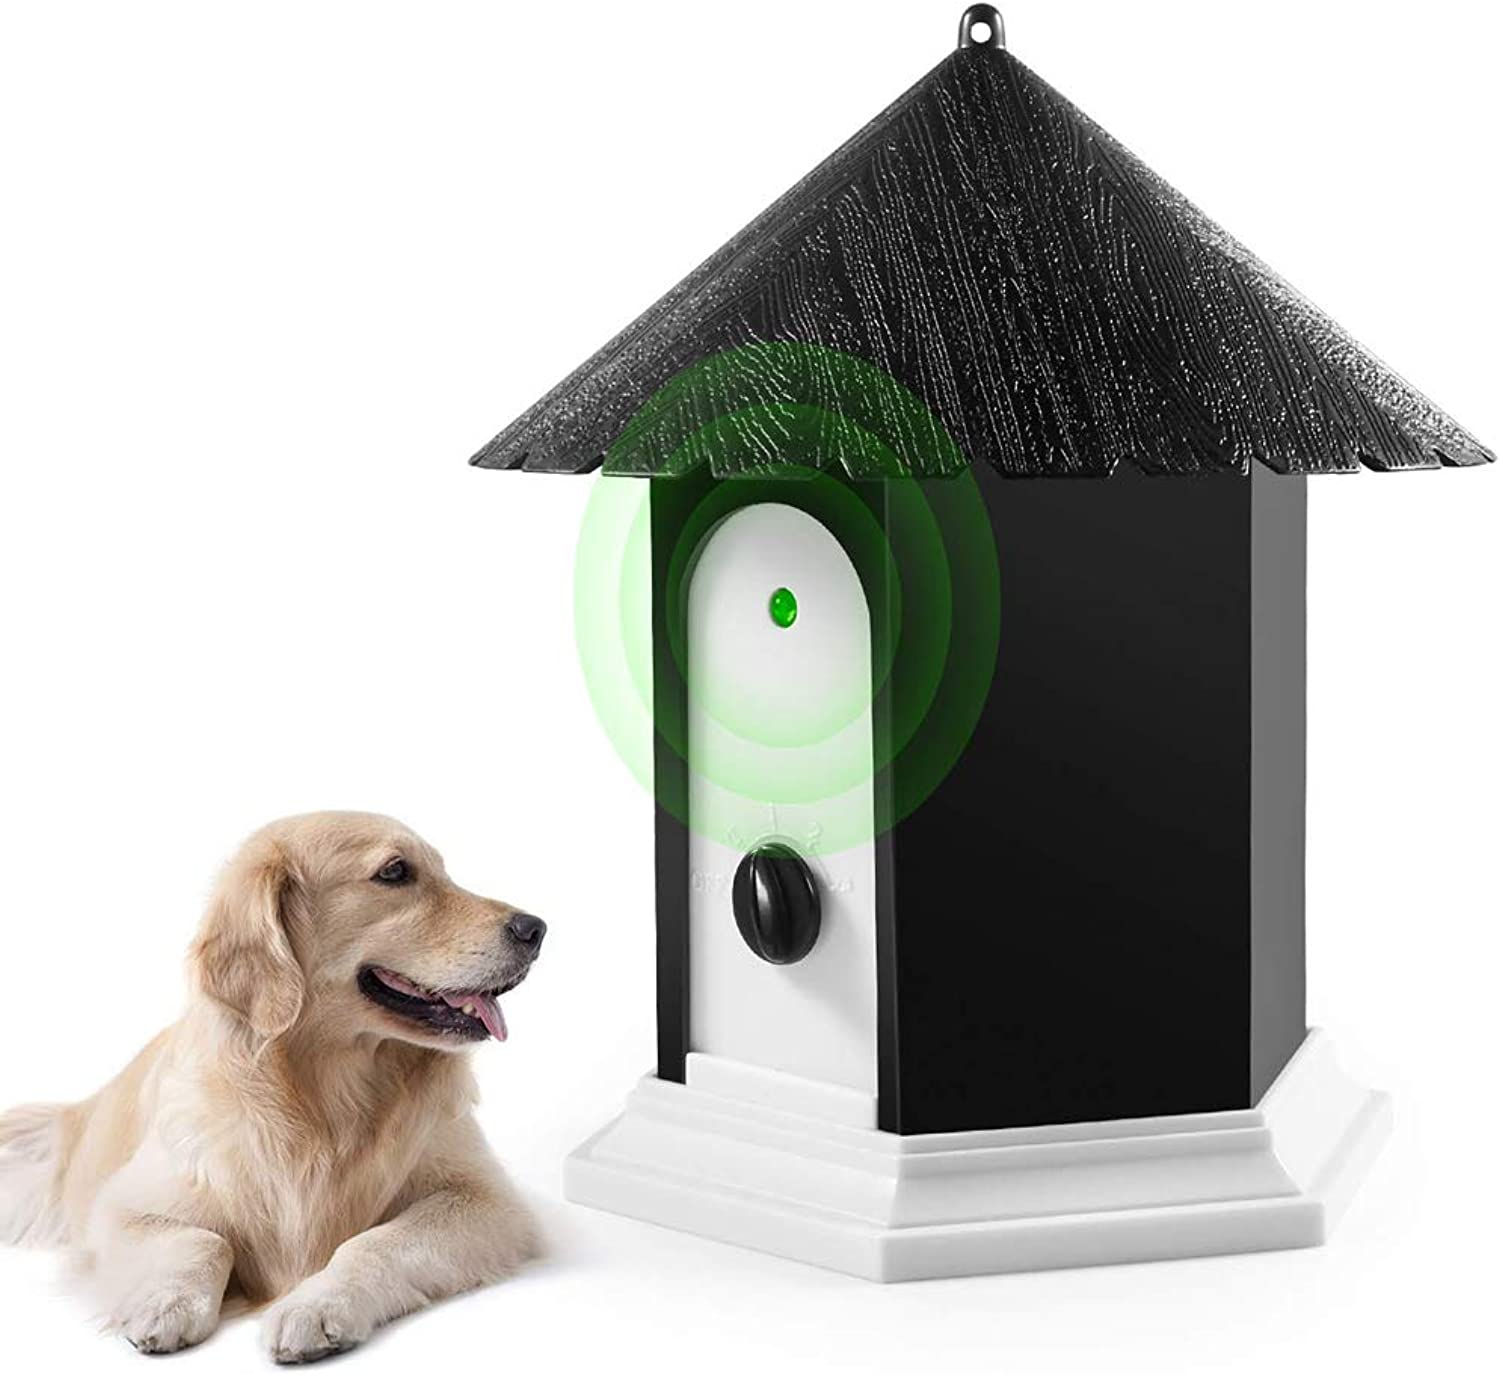 Anti Barking Device,Outdoor Waterproof Bark Control with Adjustable Level